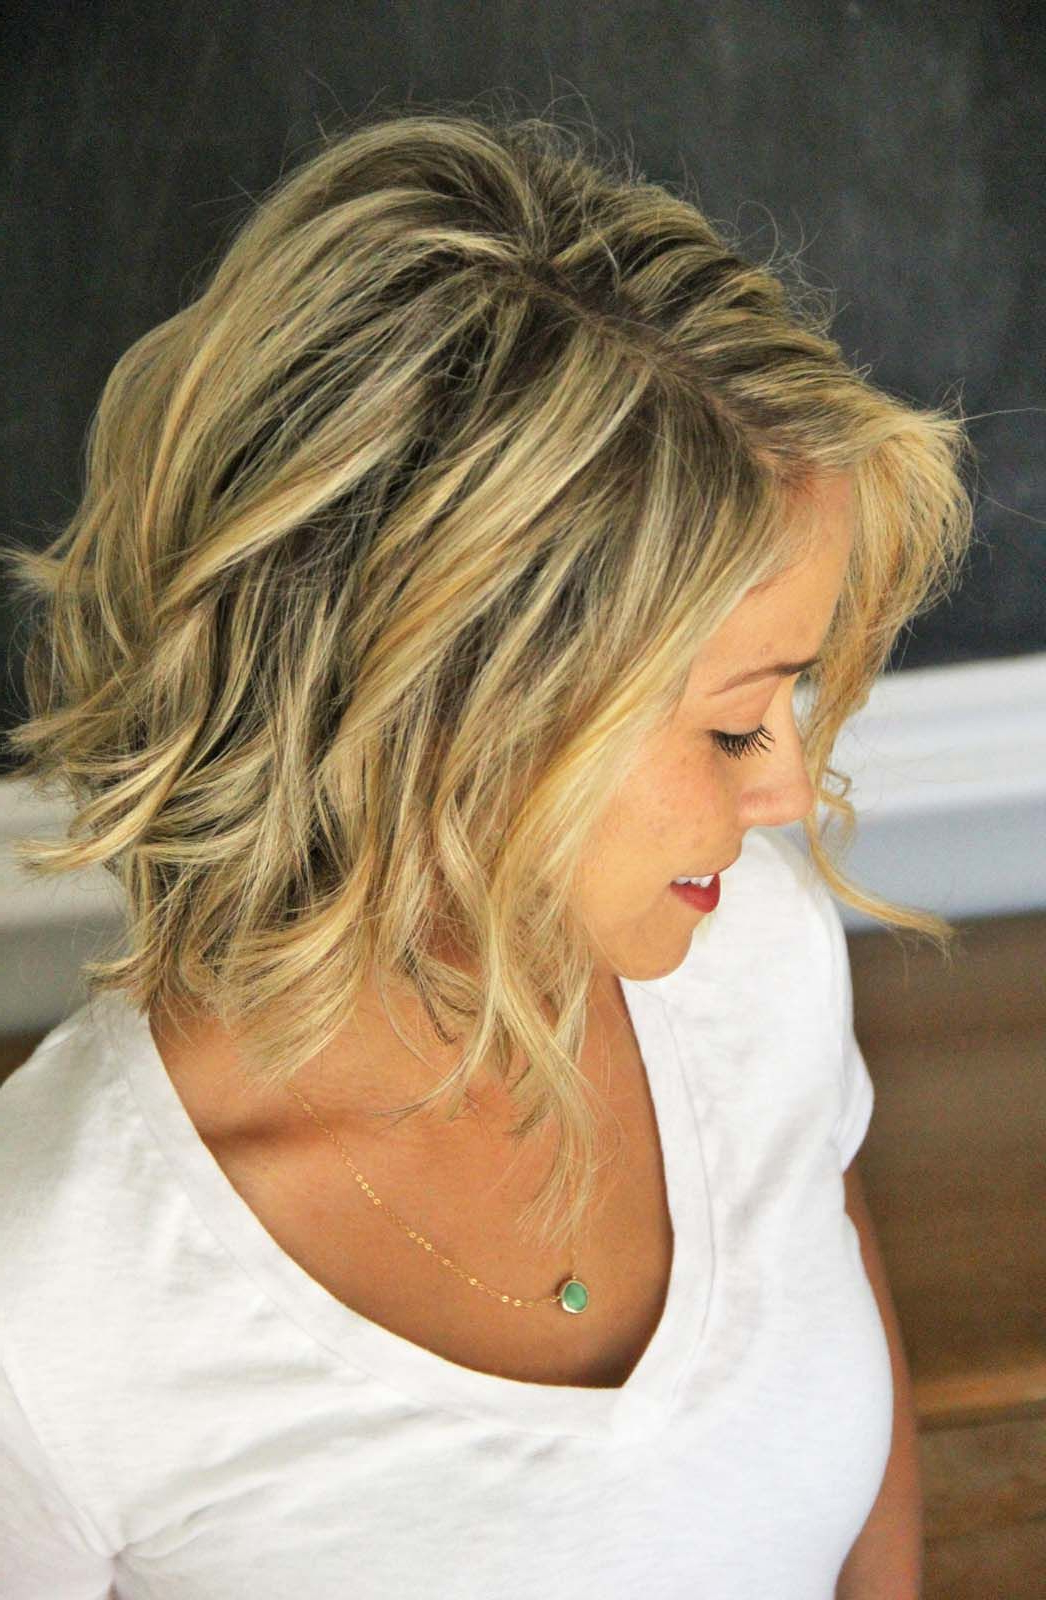 How To: Beach Waves For Short Hair | Hair | Pinterest | Beach Waves With Regard To Beach Hairstyles For Short Hair (View 11 of 25)